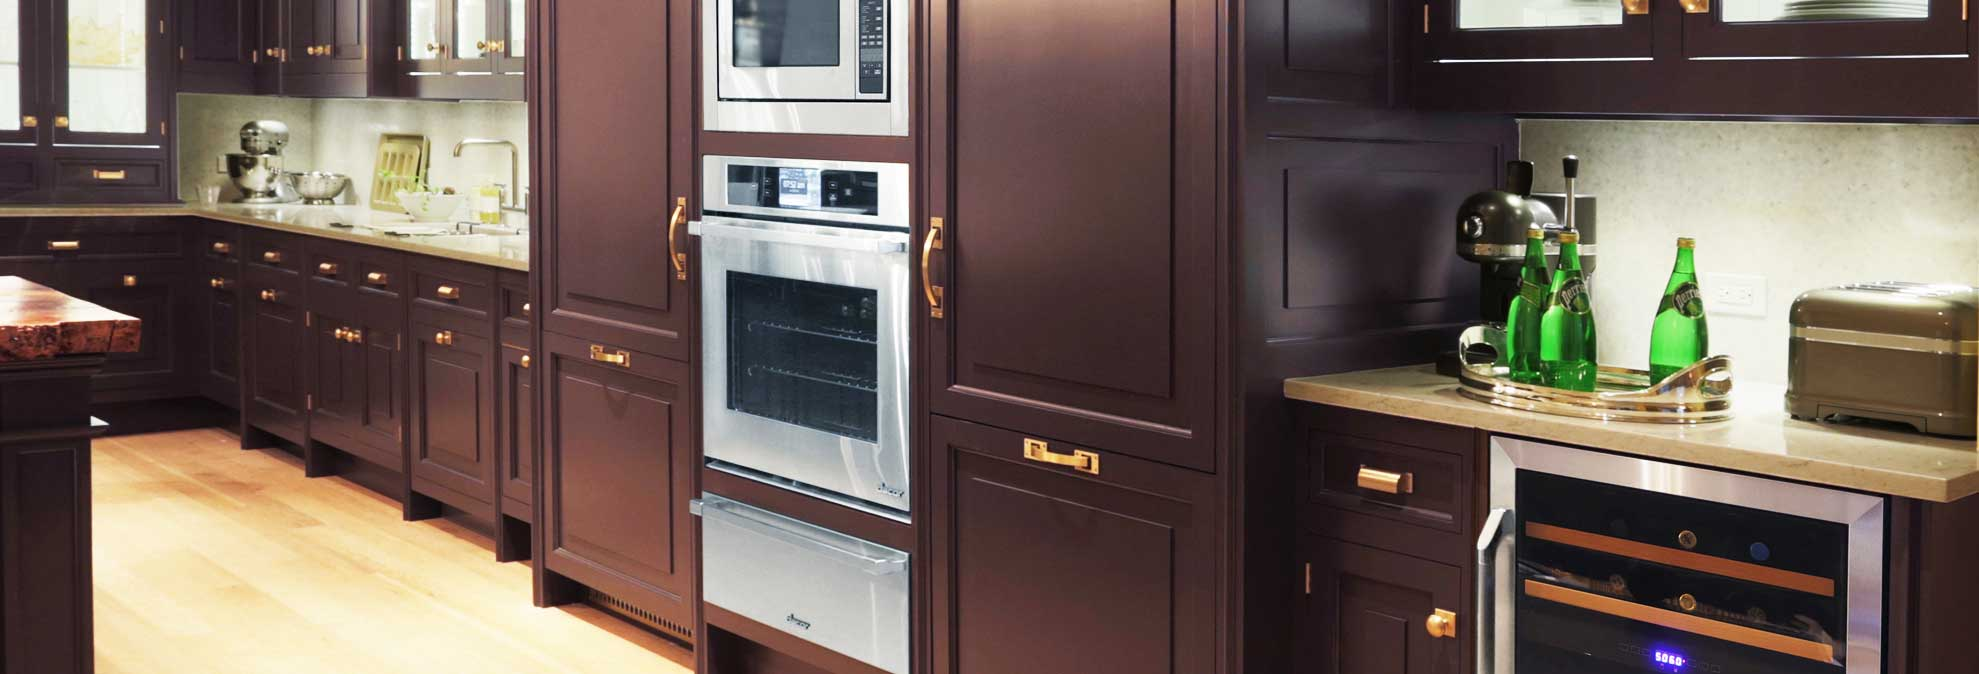 Best Kitchen Cabinet Buying Guide Consumer Reports - Best kitchen cabinets for the money